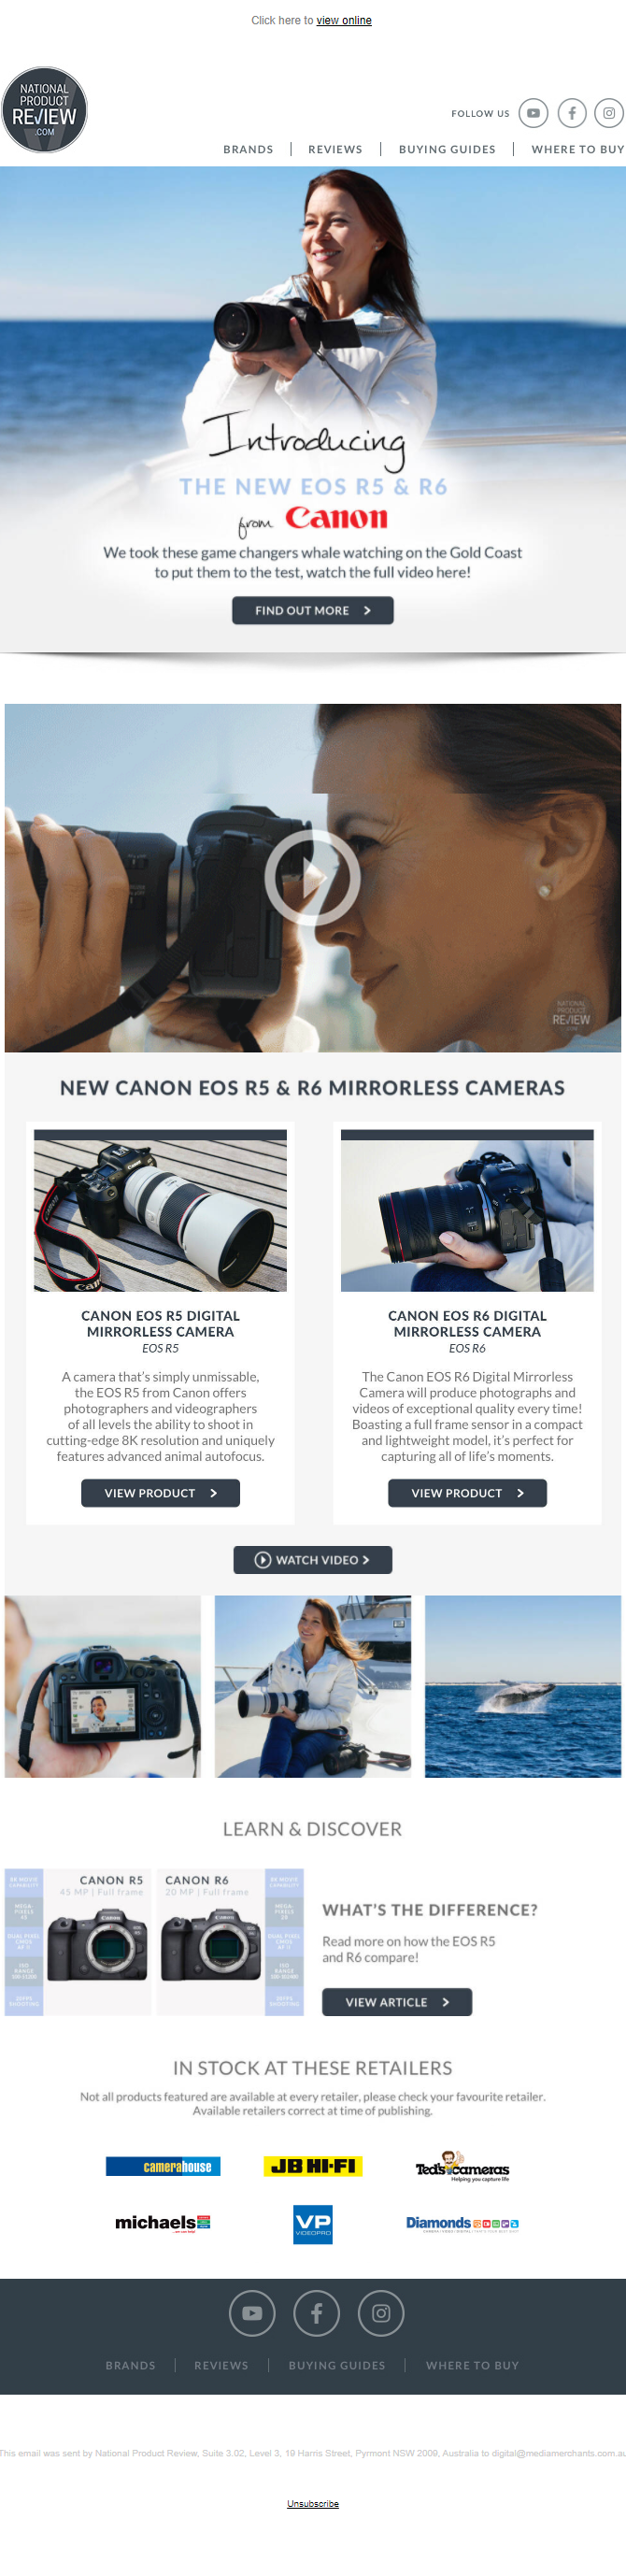 Canon Campaign, National Product Review by Media Merchants